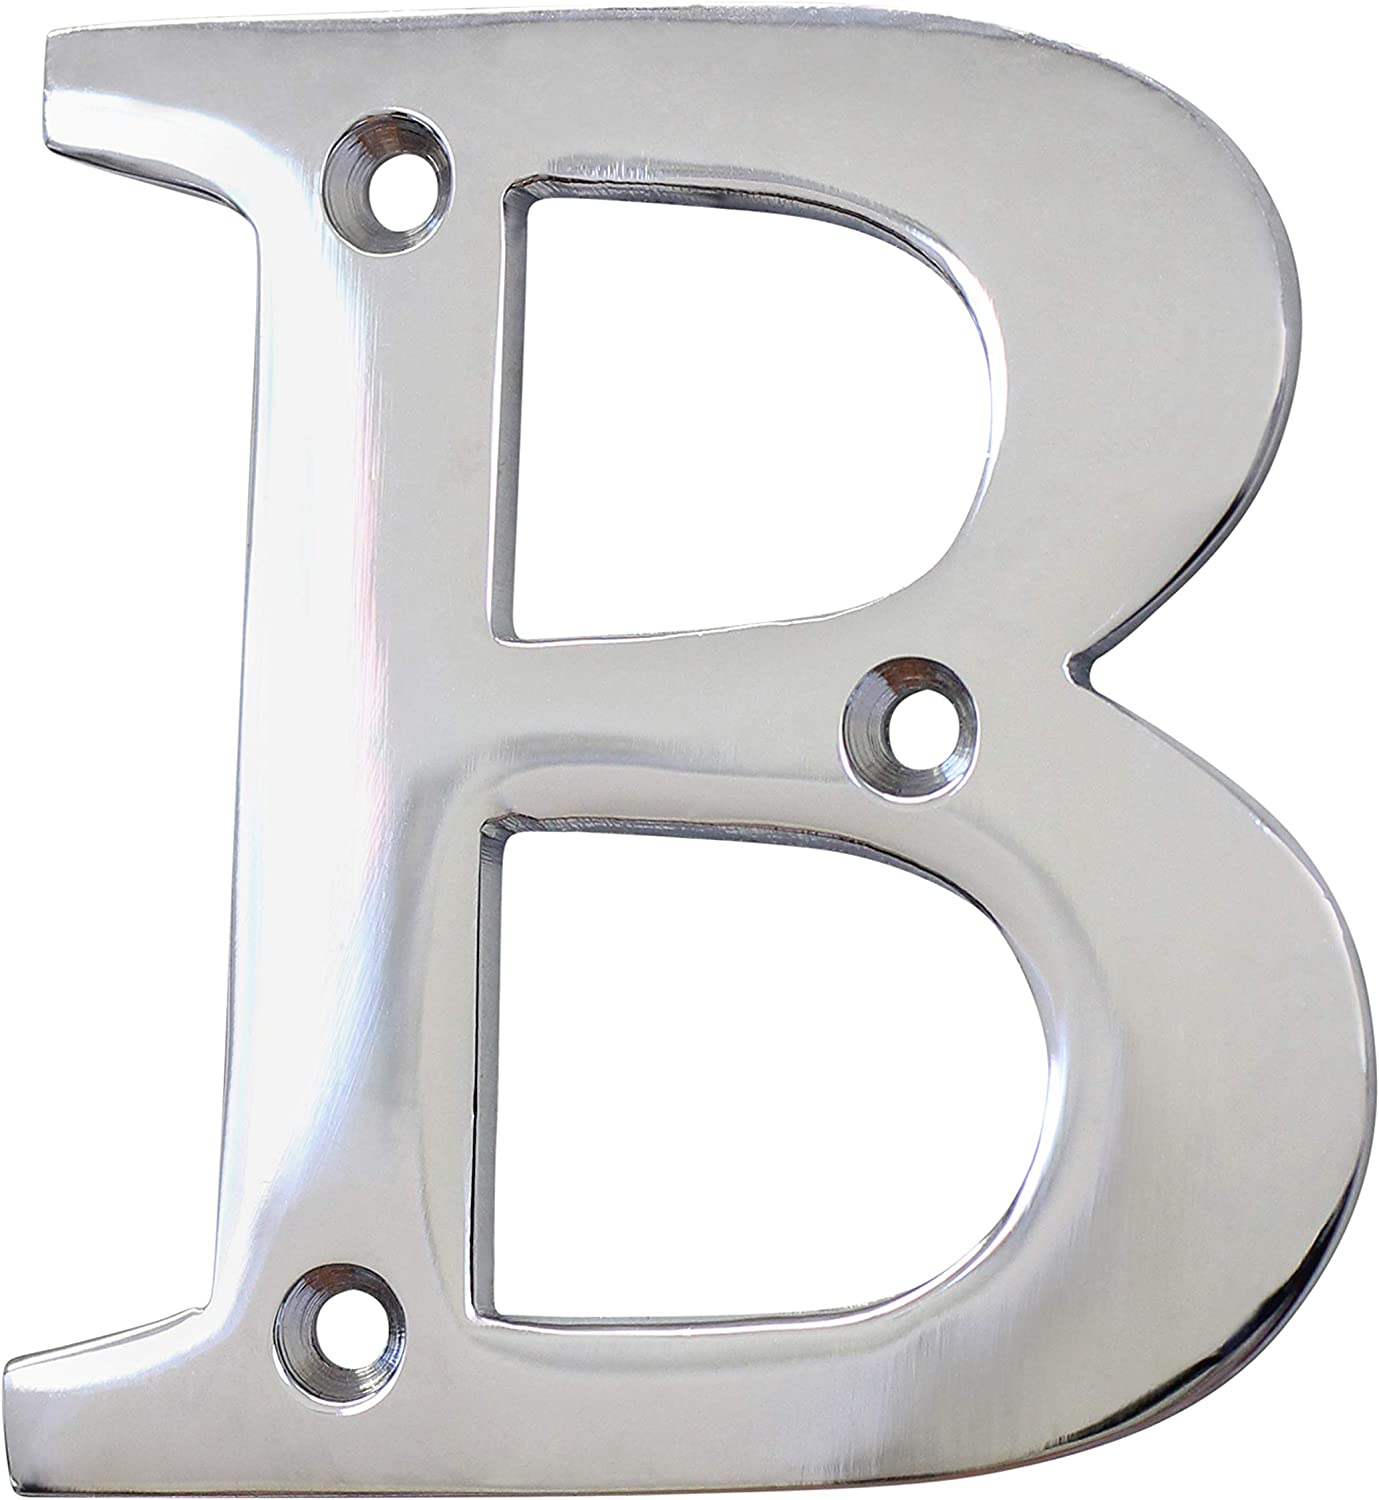 "RCH Hardware Solid Brass 3"" Tall House Letter B, Polished Chrome Shiny Silver Matching Screws Included"